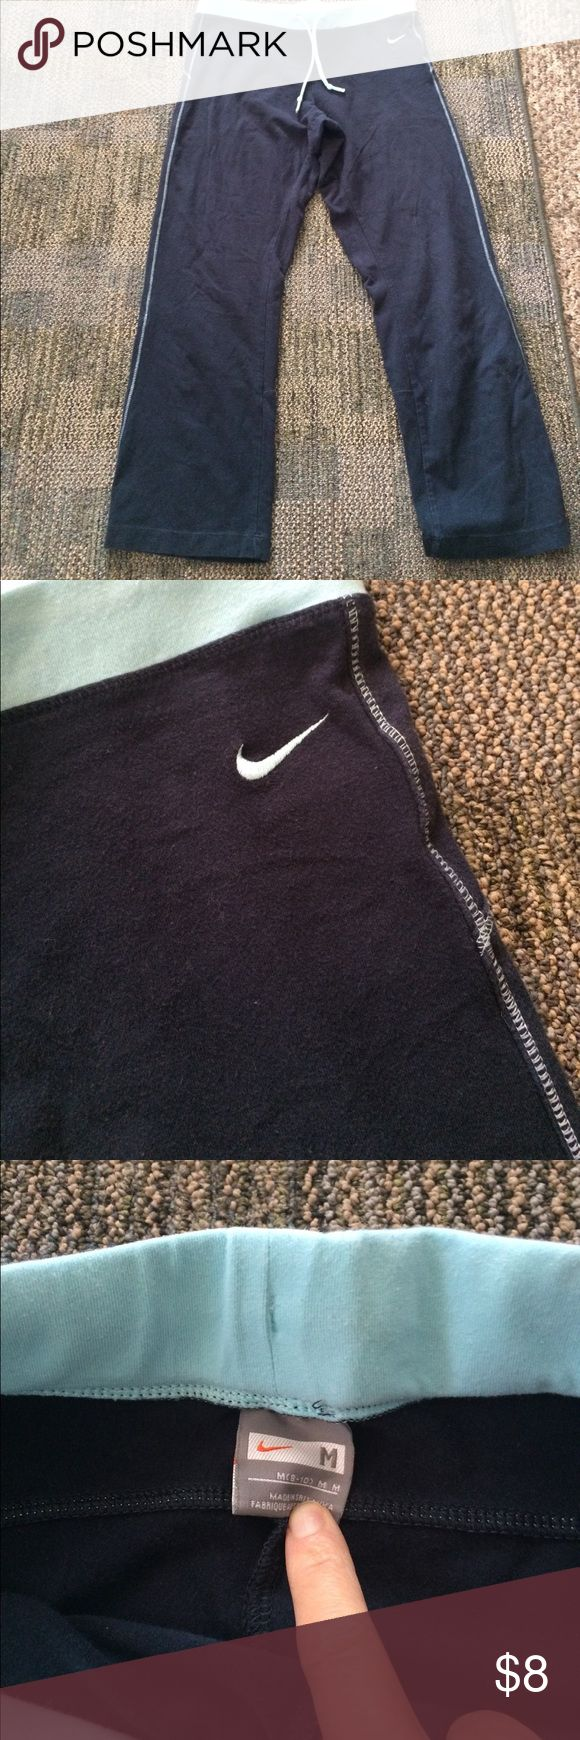 Nike Capri Really cute navy blue and light blue Nike Capri size m 92% cotton super comfortable in good used shape they do show slight wear from washing but still real nice Nike Shorts